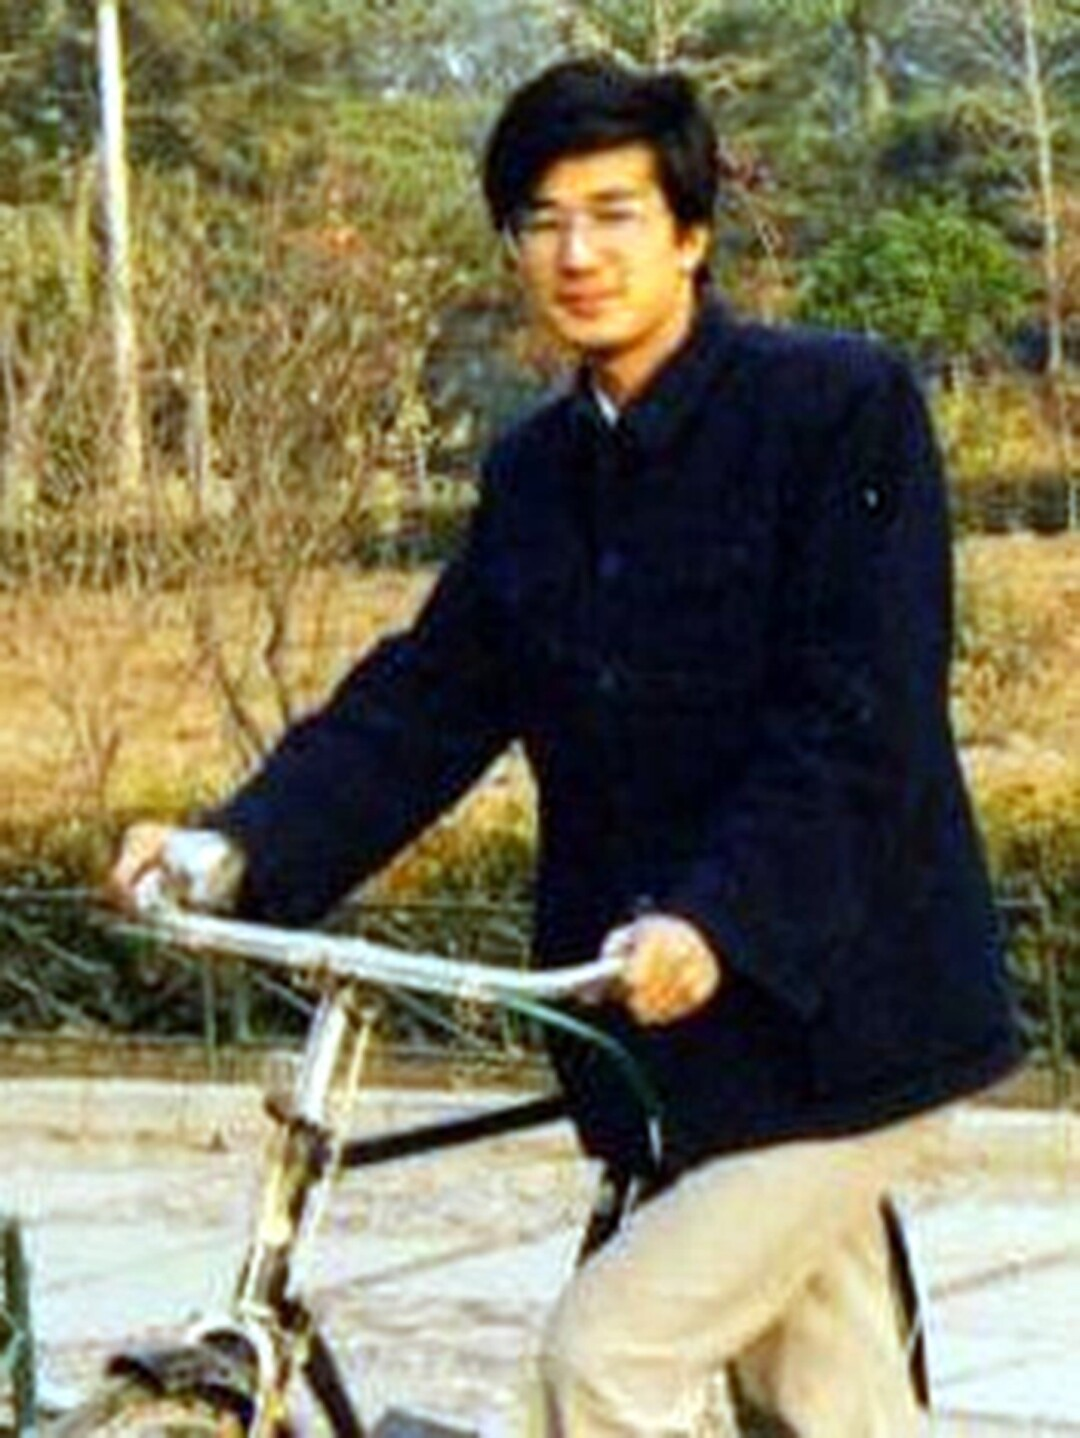 Lu Chunlin, a graduate student, was killed during the Tiananmen Square protests in 1989.